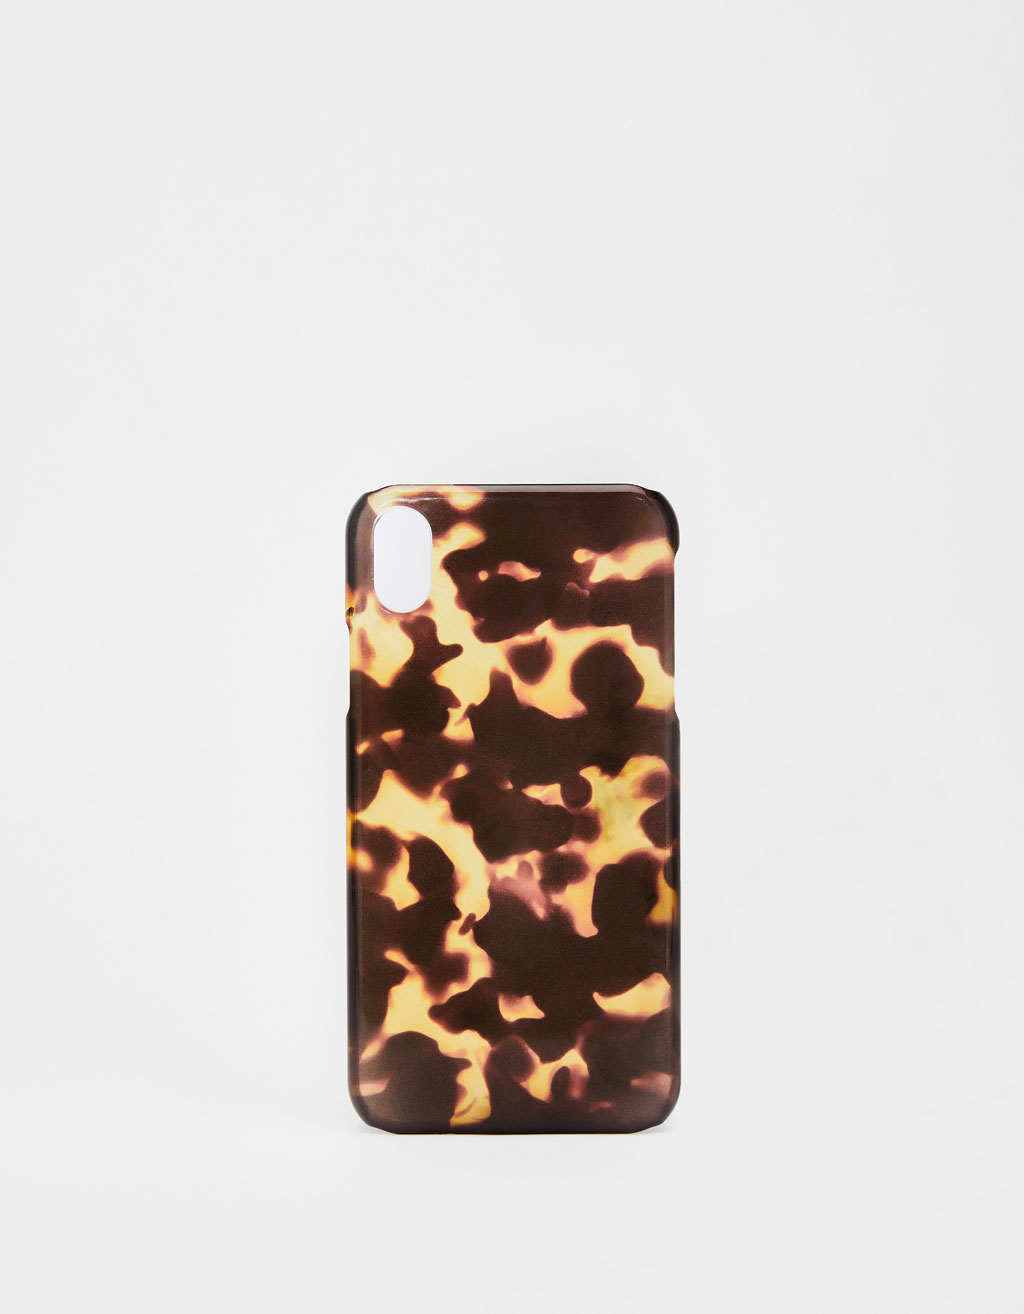 Coque imitation écaille iPhone XR